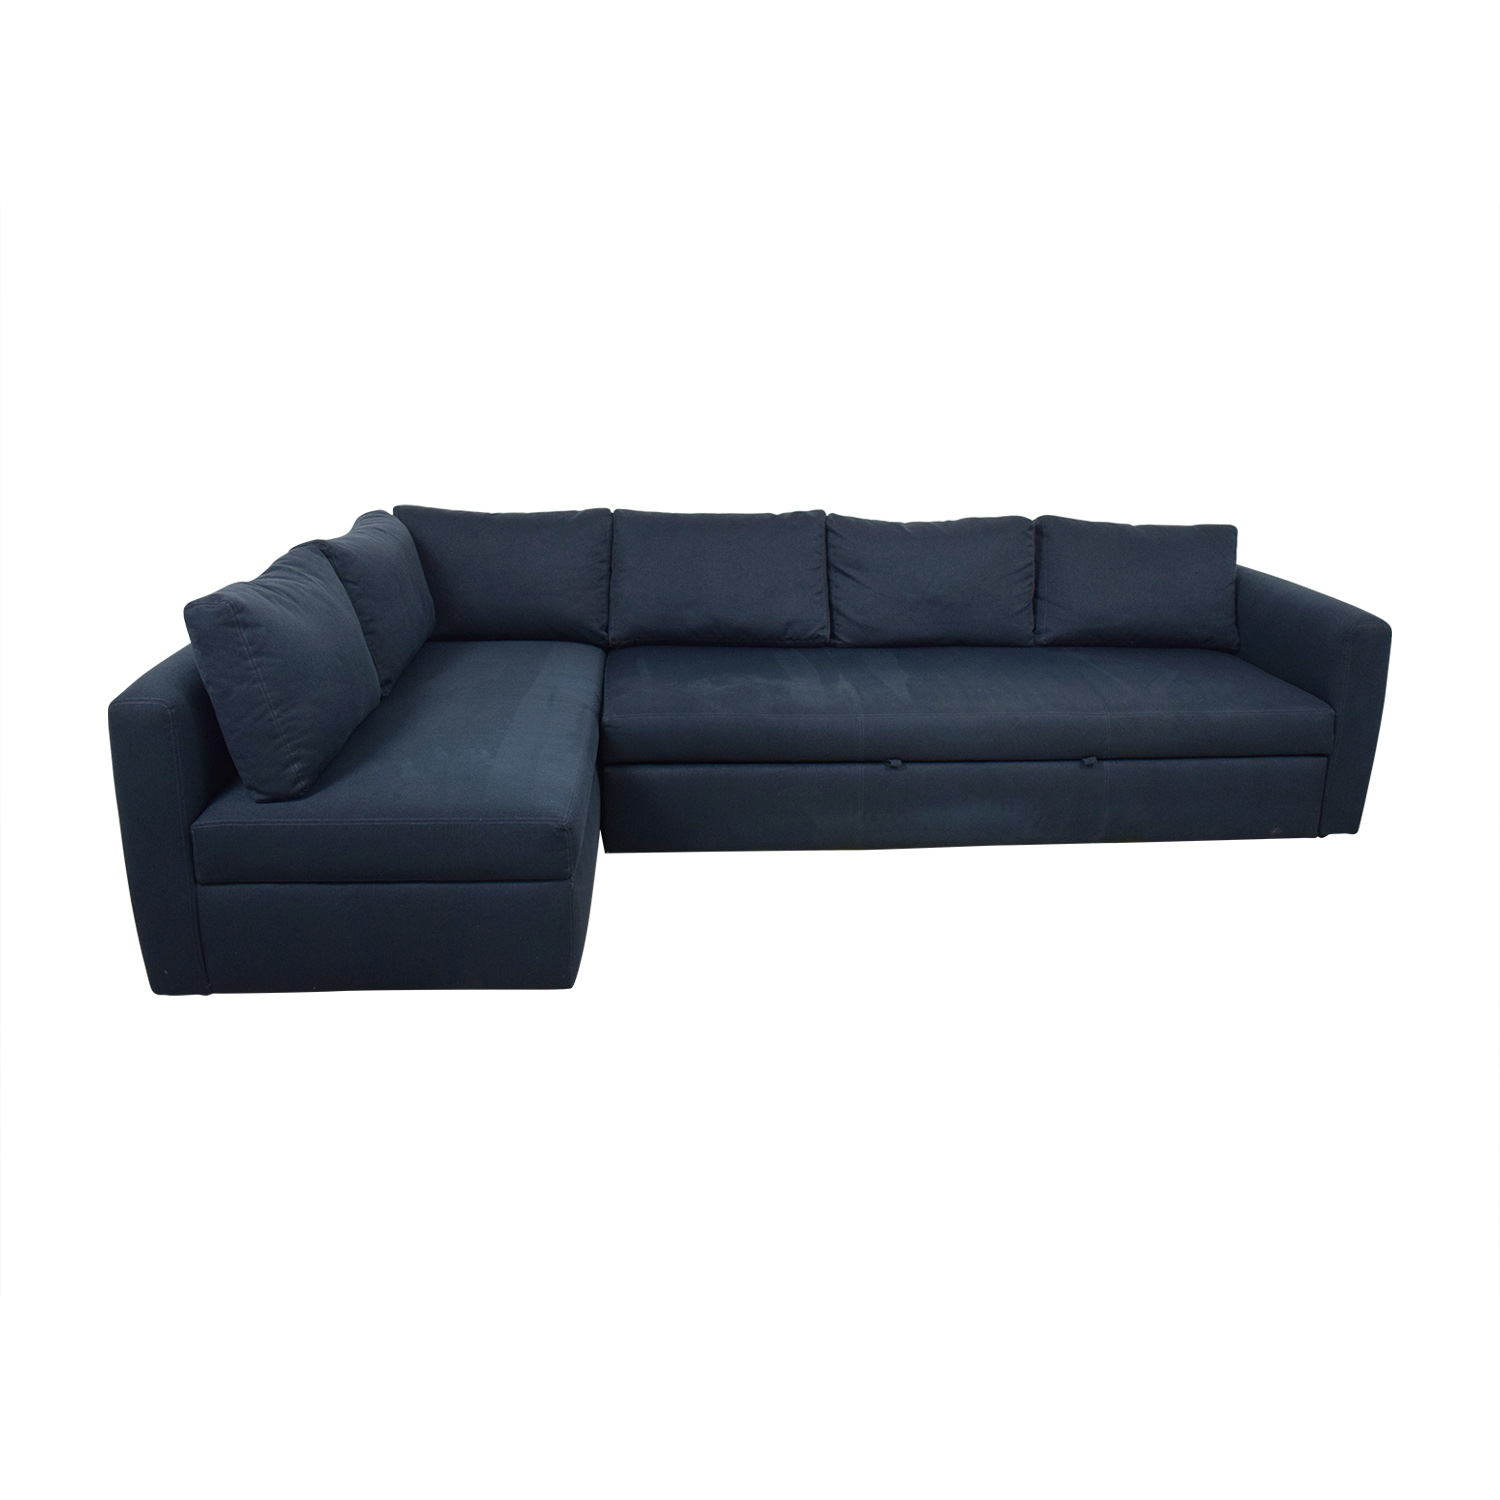 Room & Board Sectional Sleeper Sofa / Sofa Beds